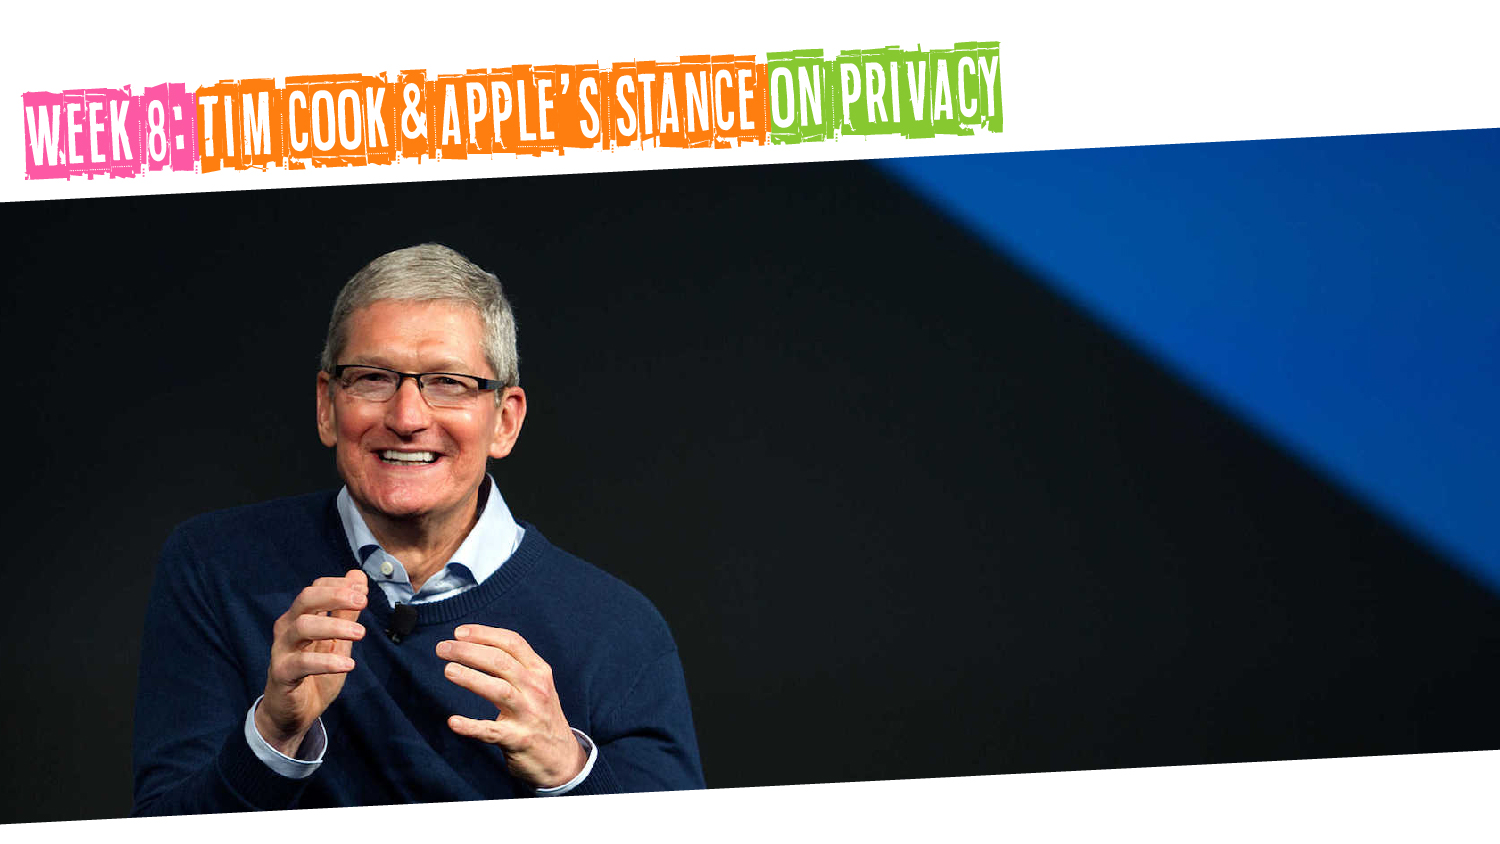 IYM Week 8: Tim Cook & Apple's Stance on Privacy